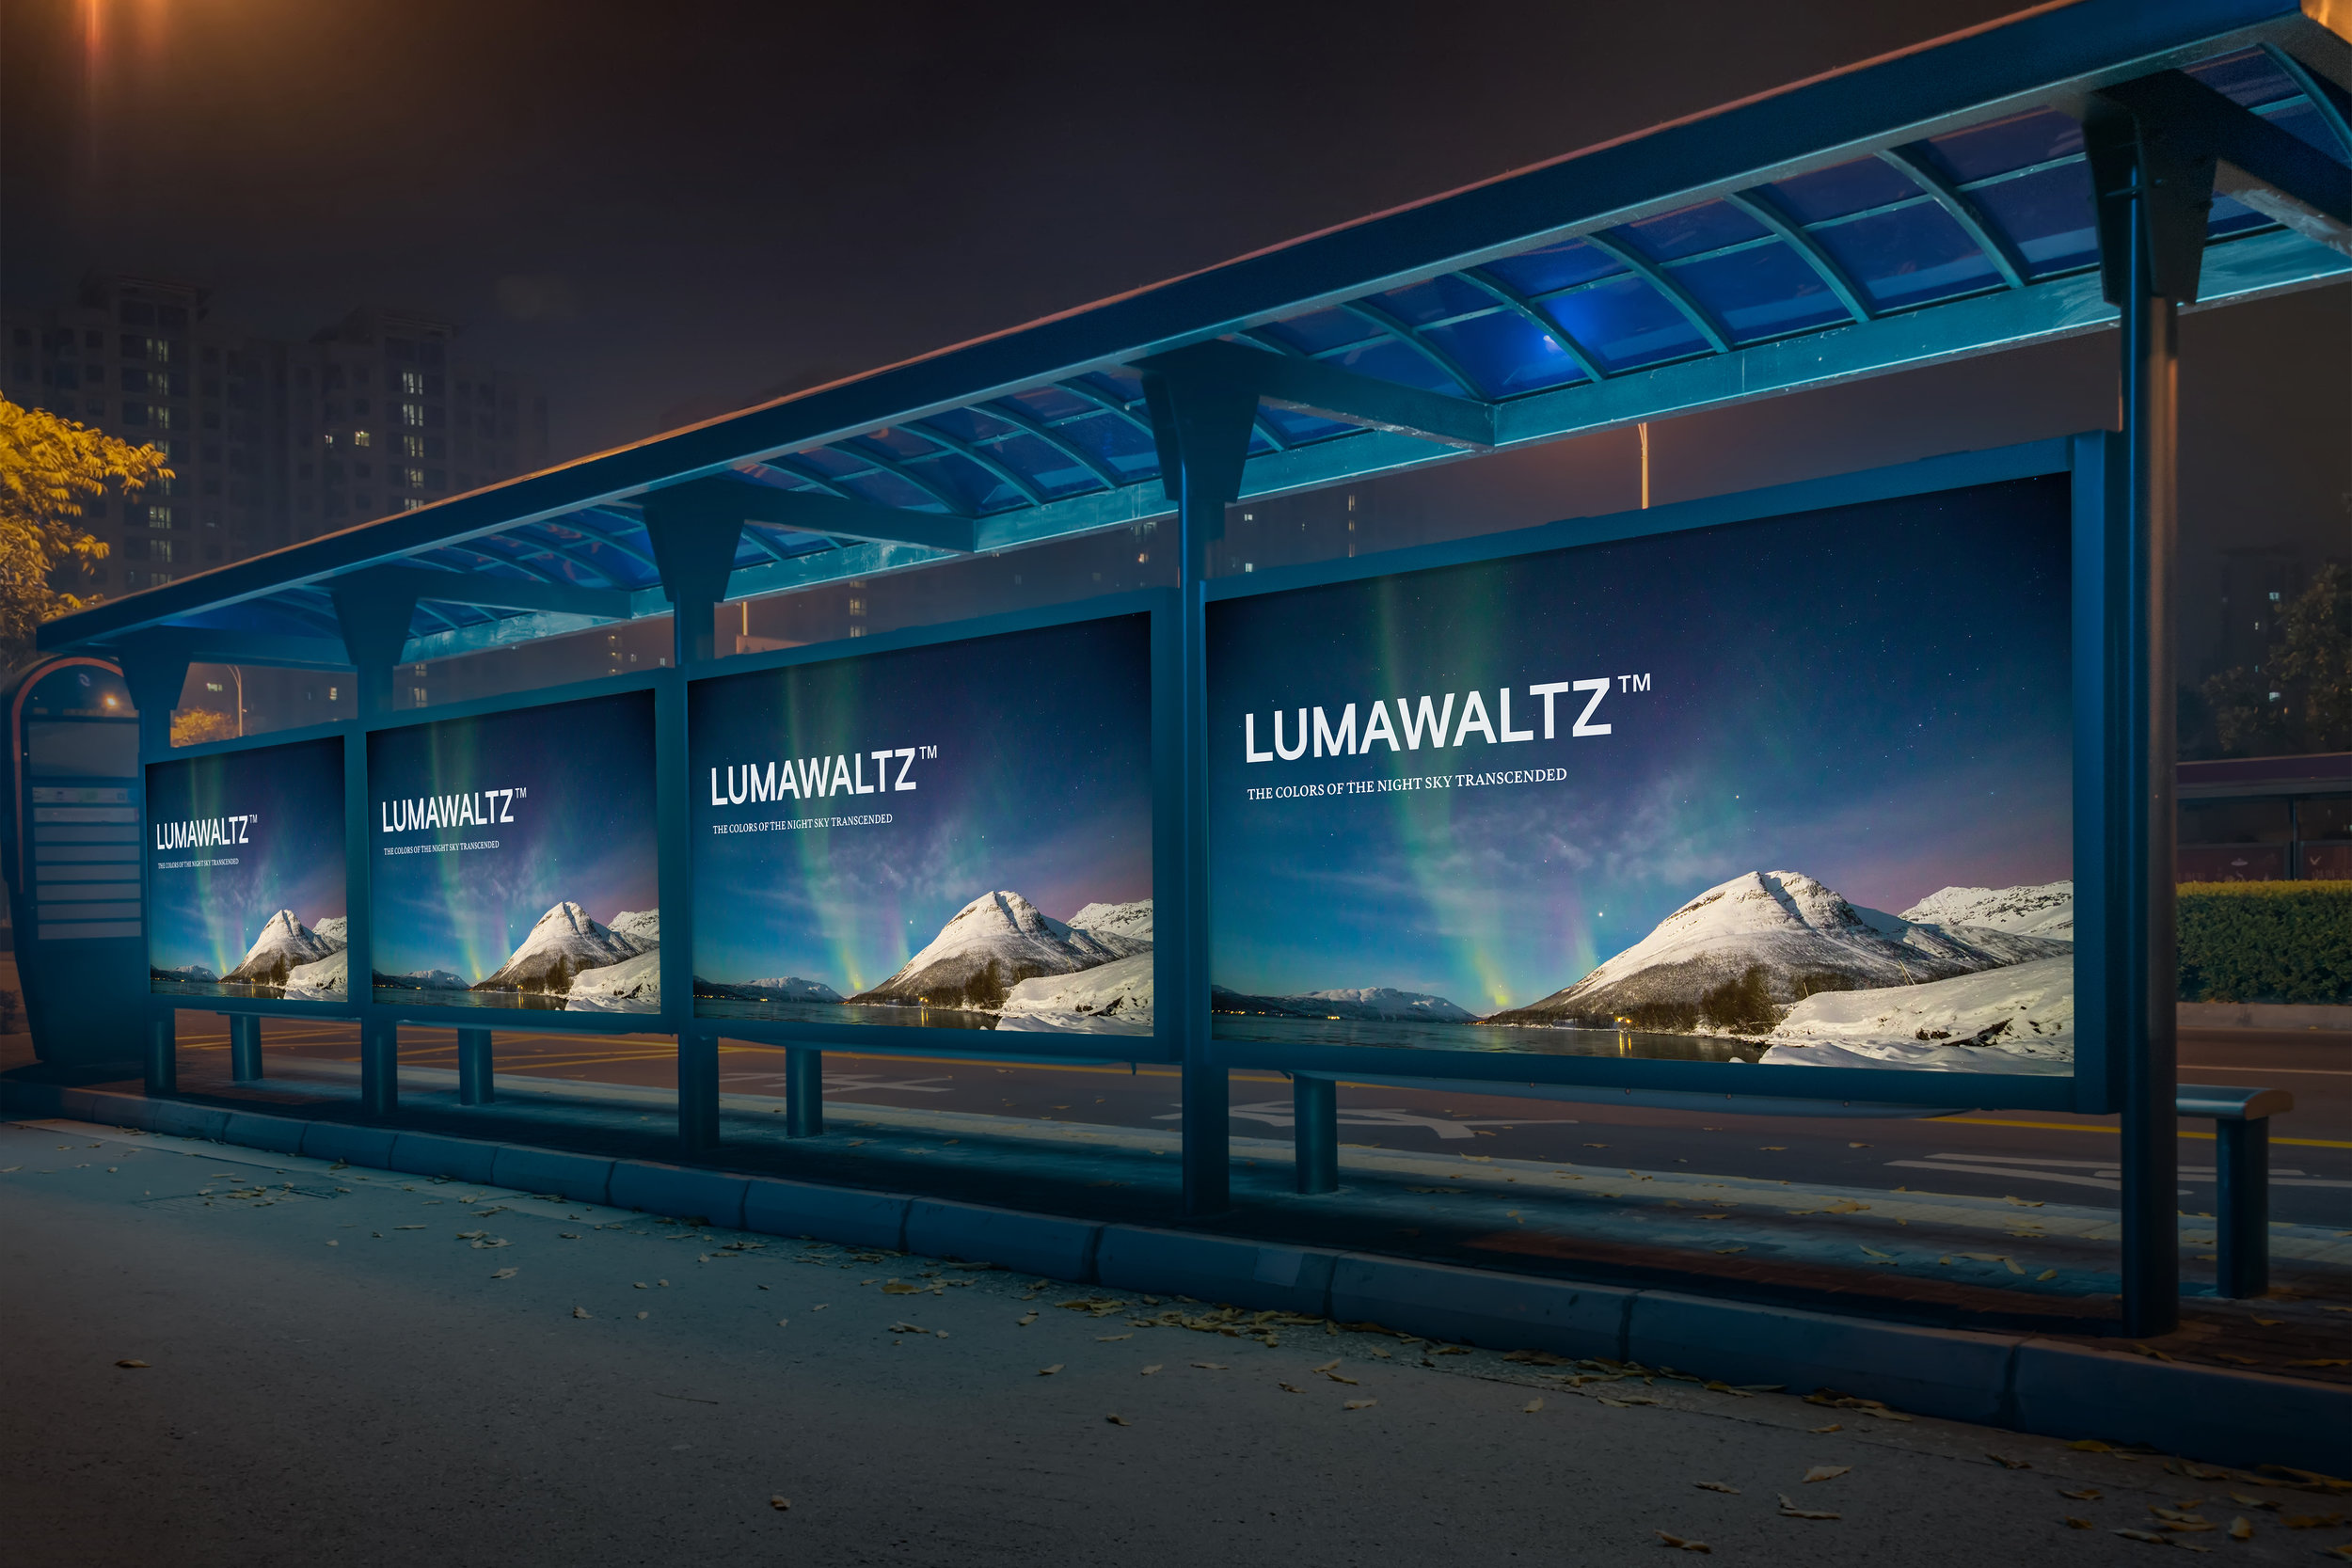 merchandising & advertisements - LUMAWALTZ™ would be sold in the Denali Northern Lights Gift Shop, located just inside the park. The product would have its own display, stacked into a triangle resembling Denali's peak. The product will be advertised in neighboring cities and airports near the park.